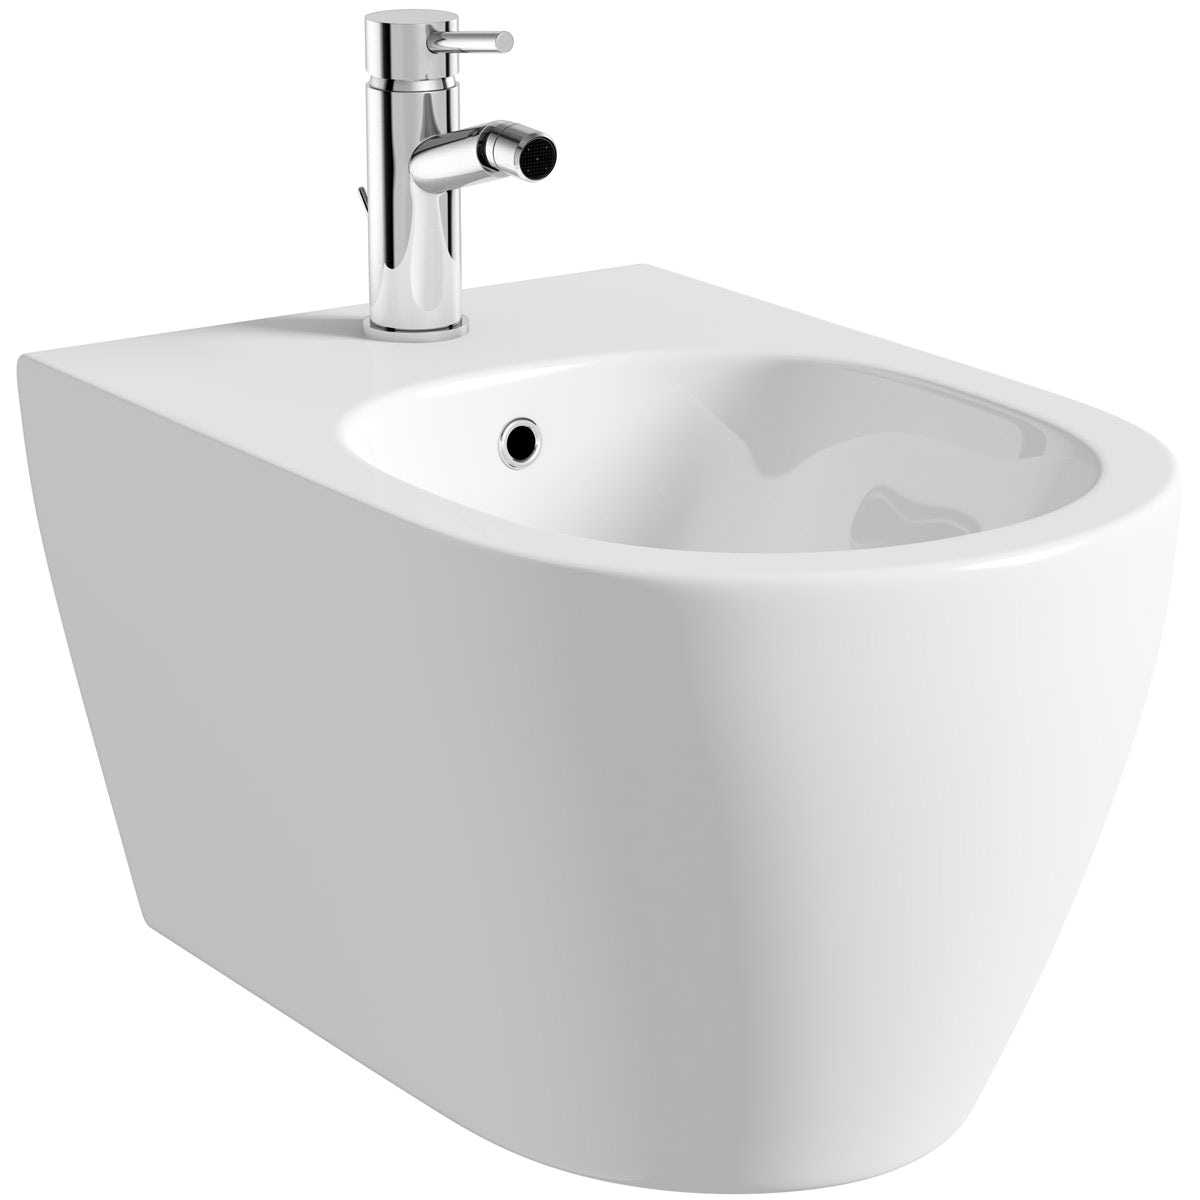 Mode Harrison wall hung bidet